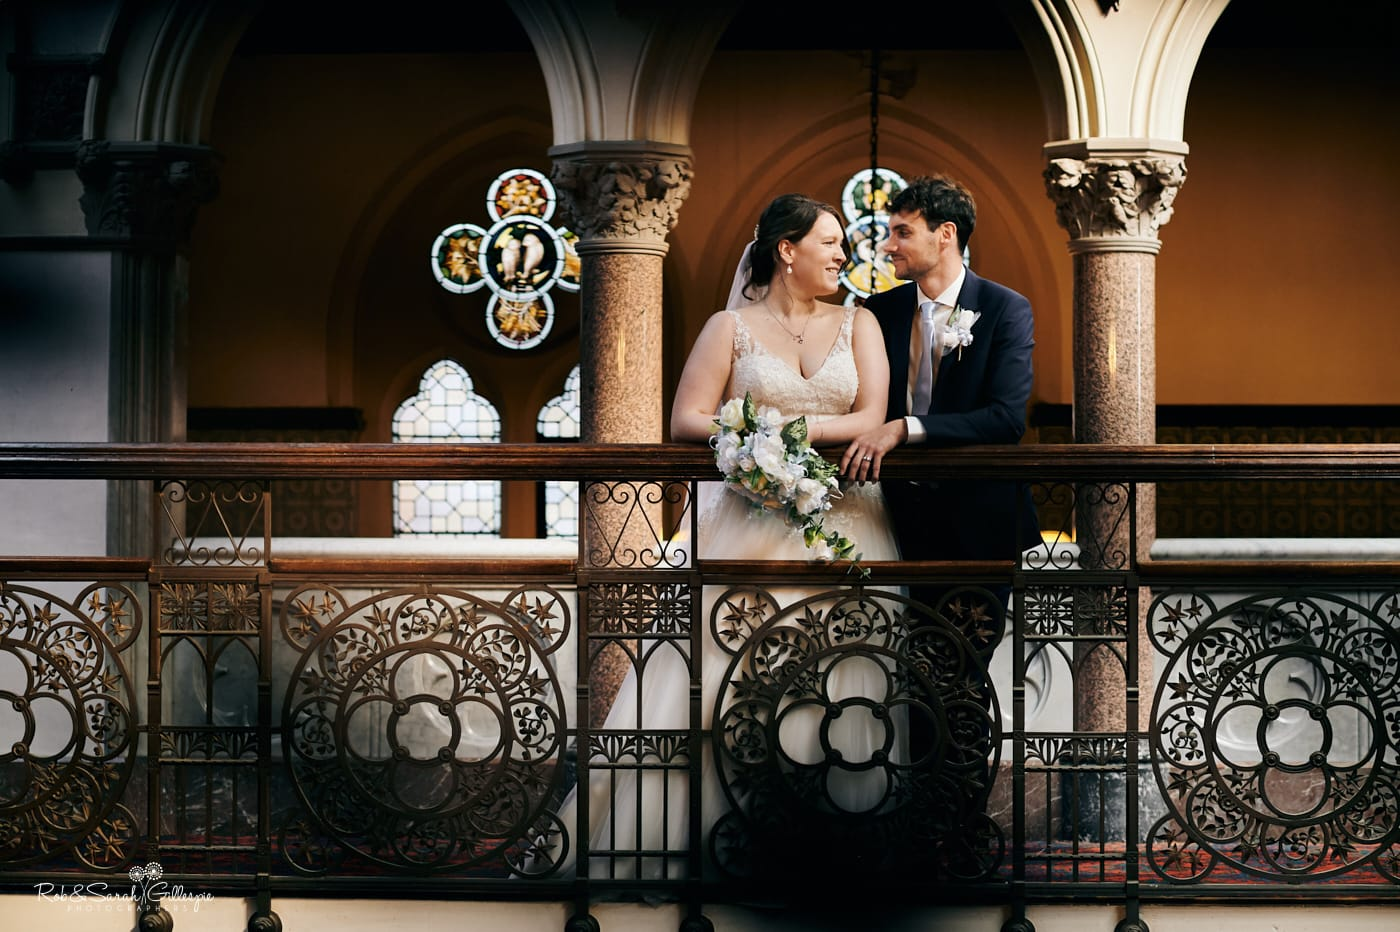 Bride and groom on balcony in beautiful old venue